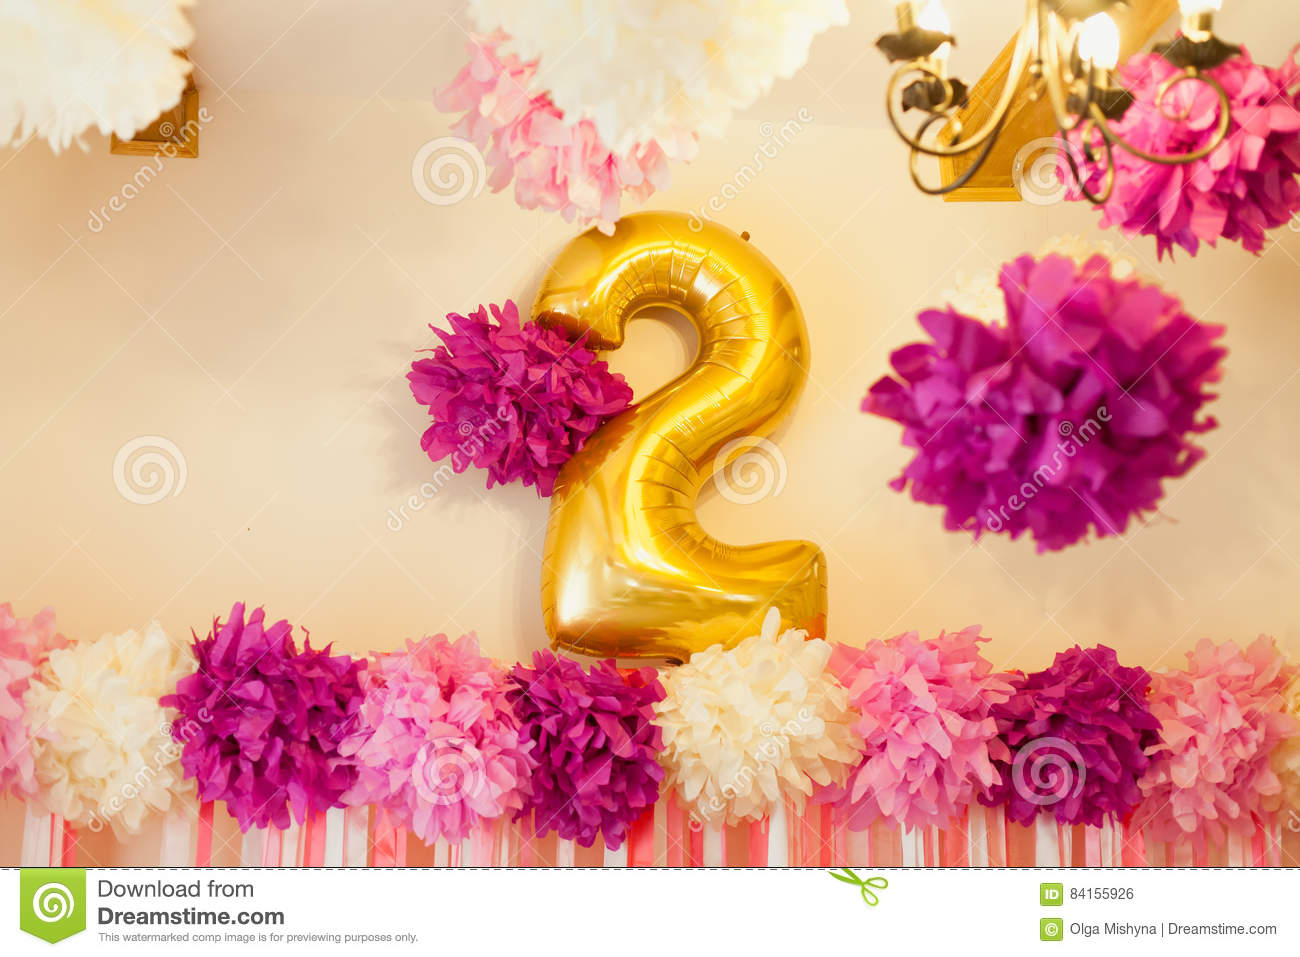 Birthday Party For Child Second Years Old Pink And Golden Colors Stylish Decorations Little Girl On Her